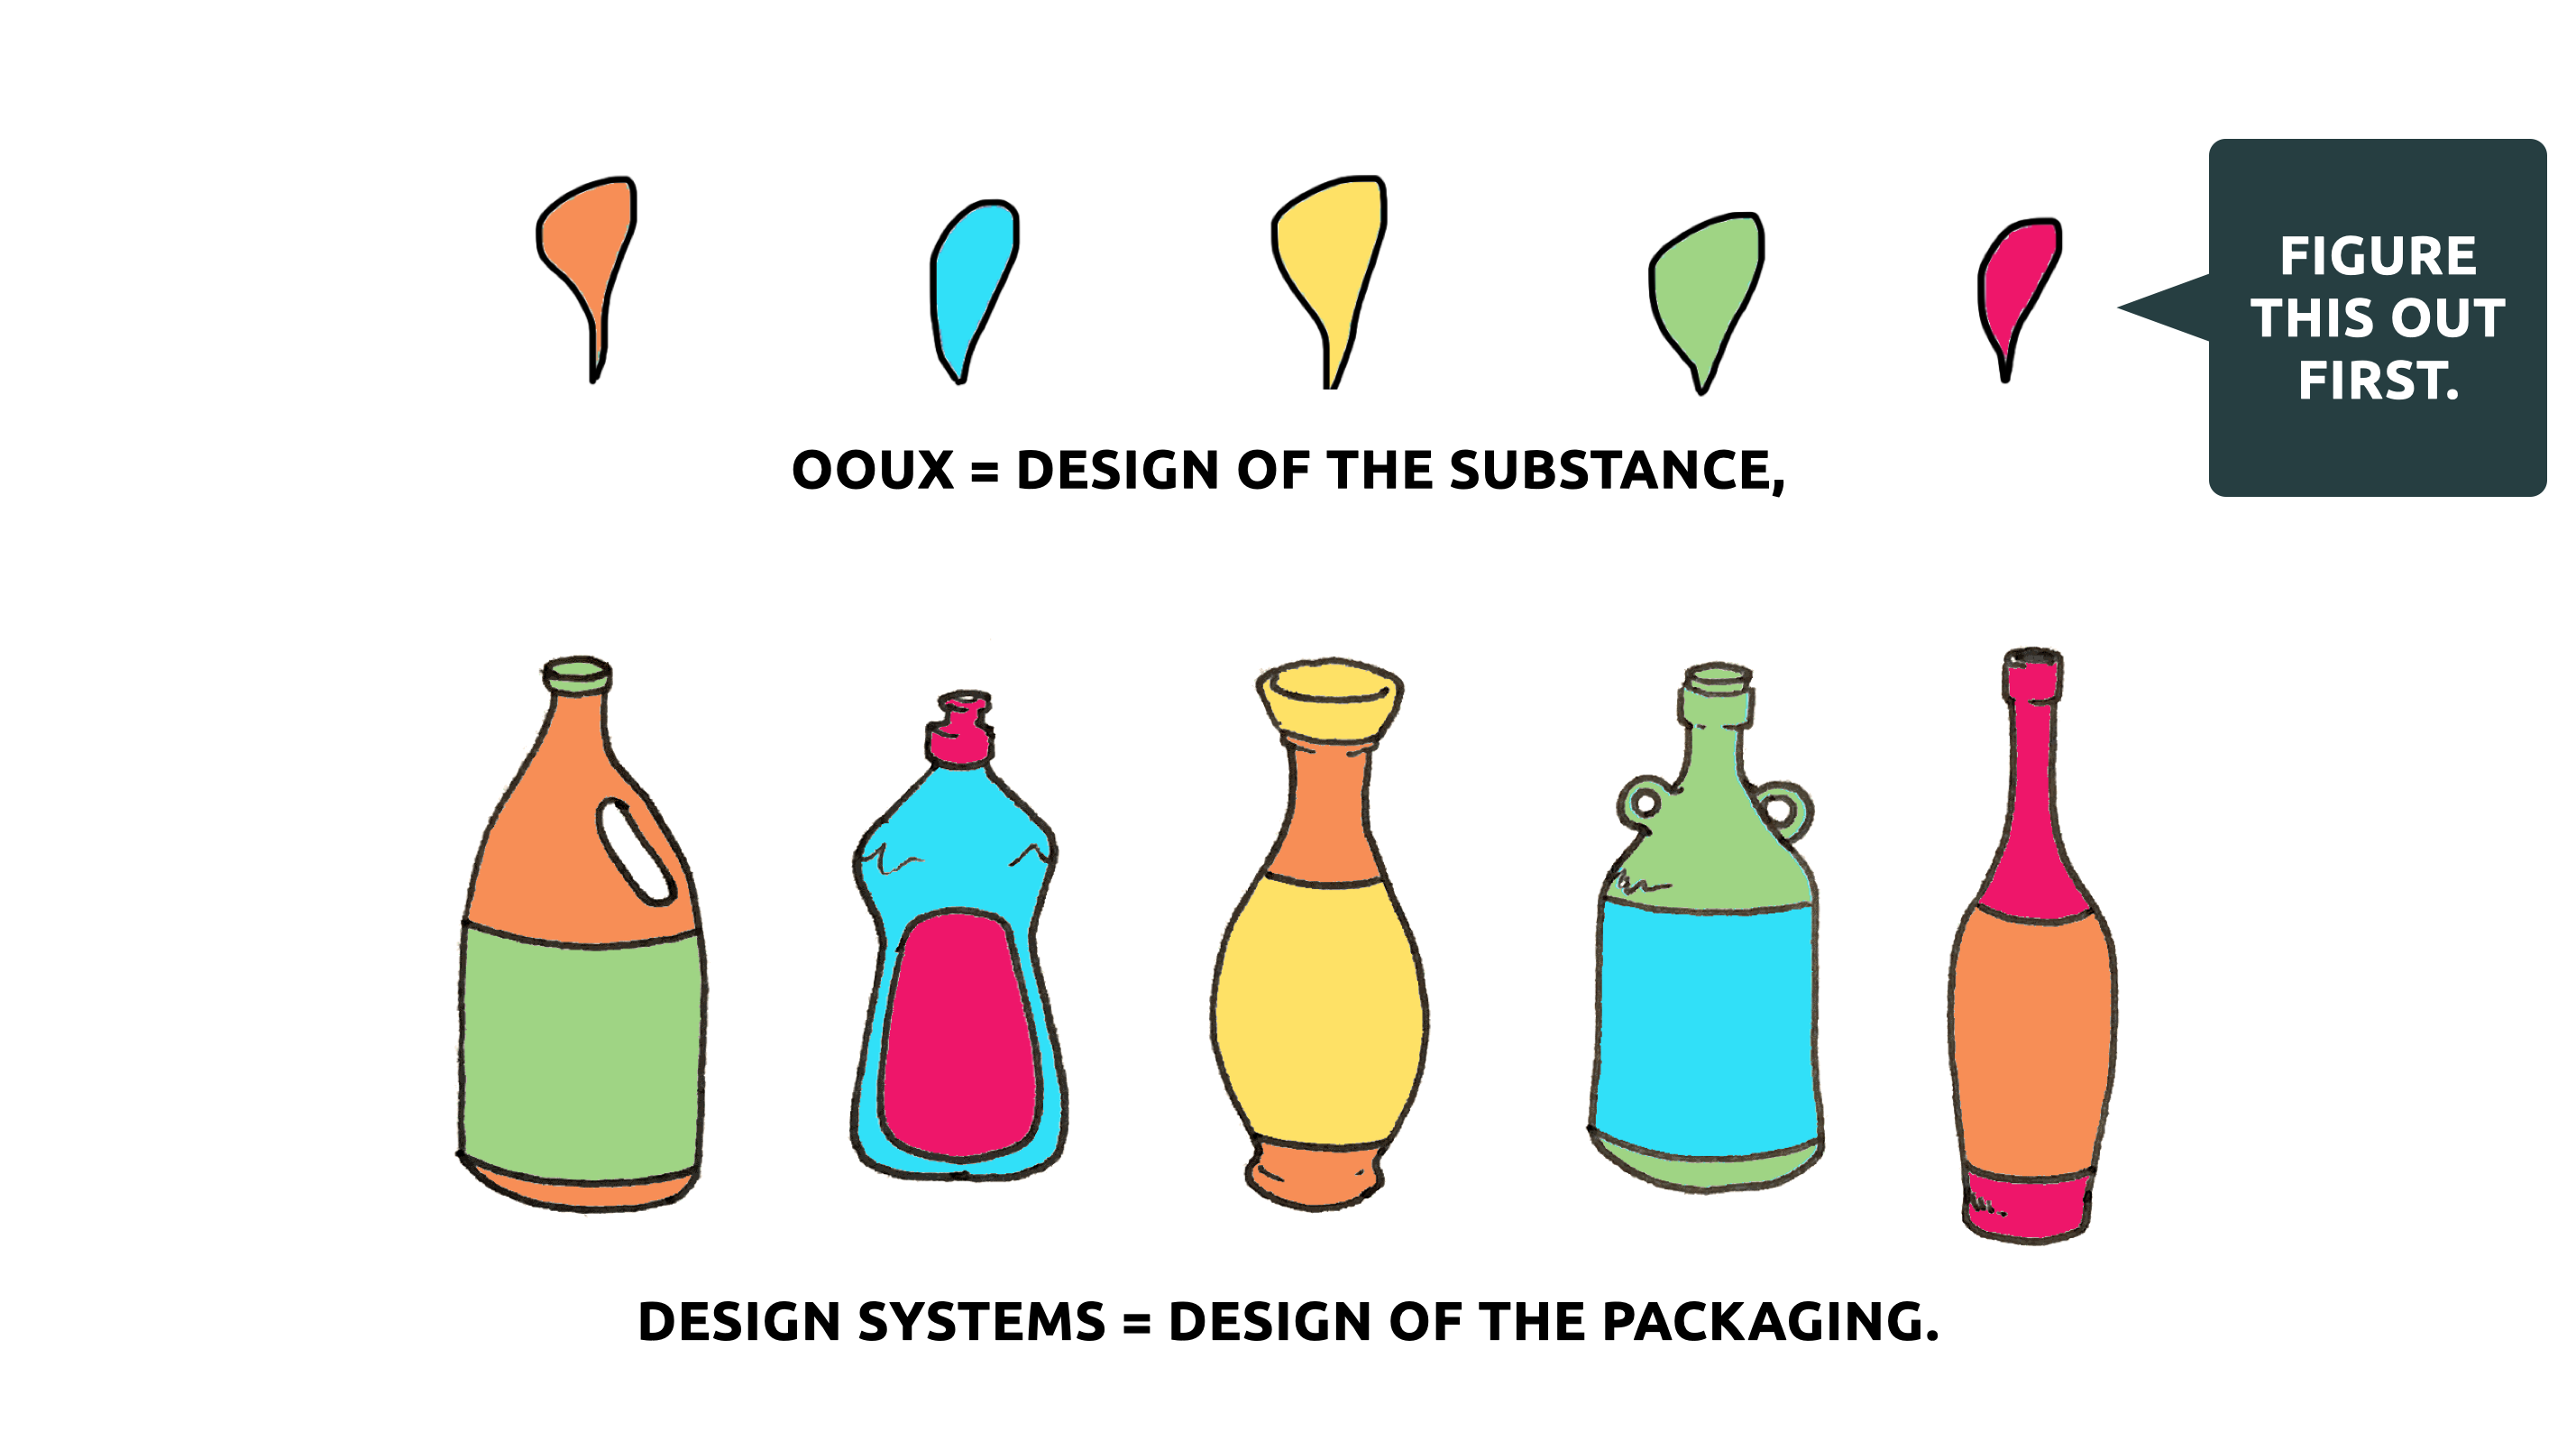 5 bottles squirt 5 liquids. O.O.U.X. = design of substance. Figure this out first. Design Systems = design of packaging.